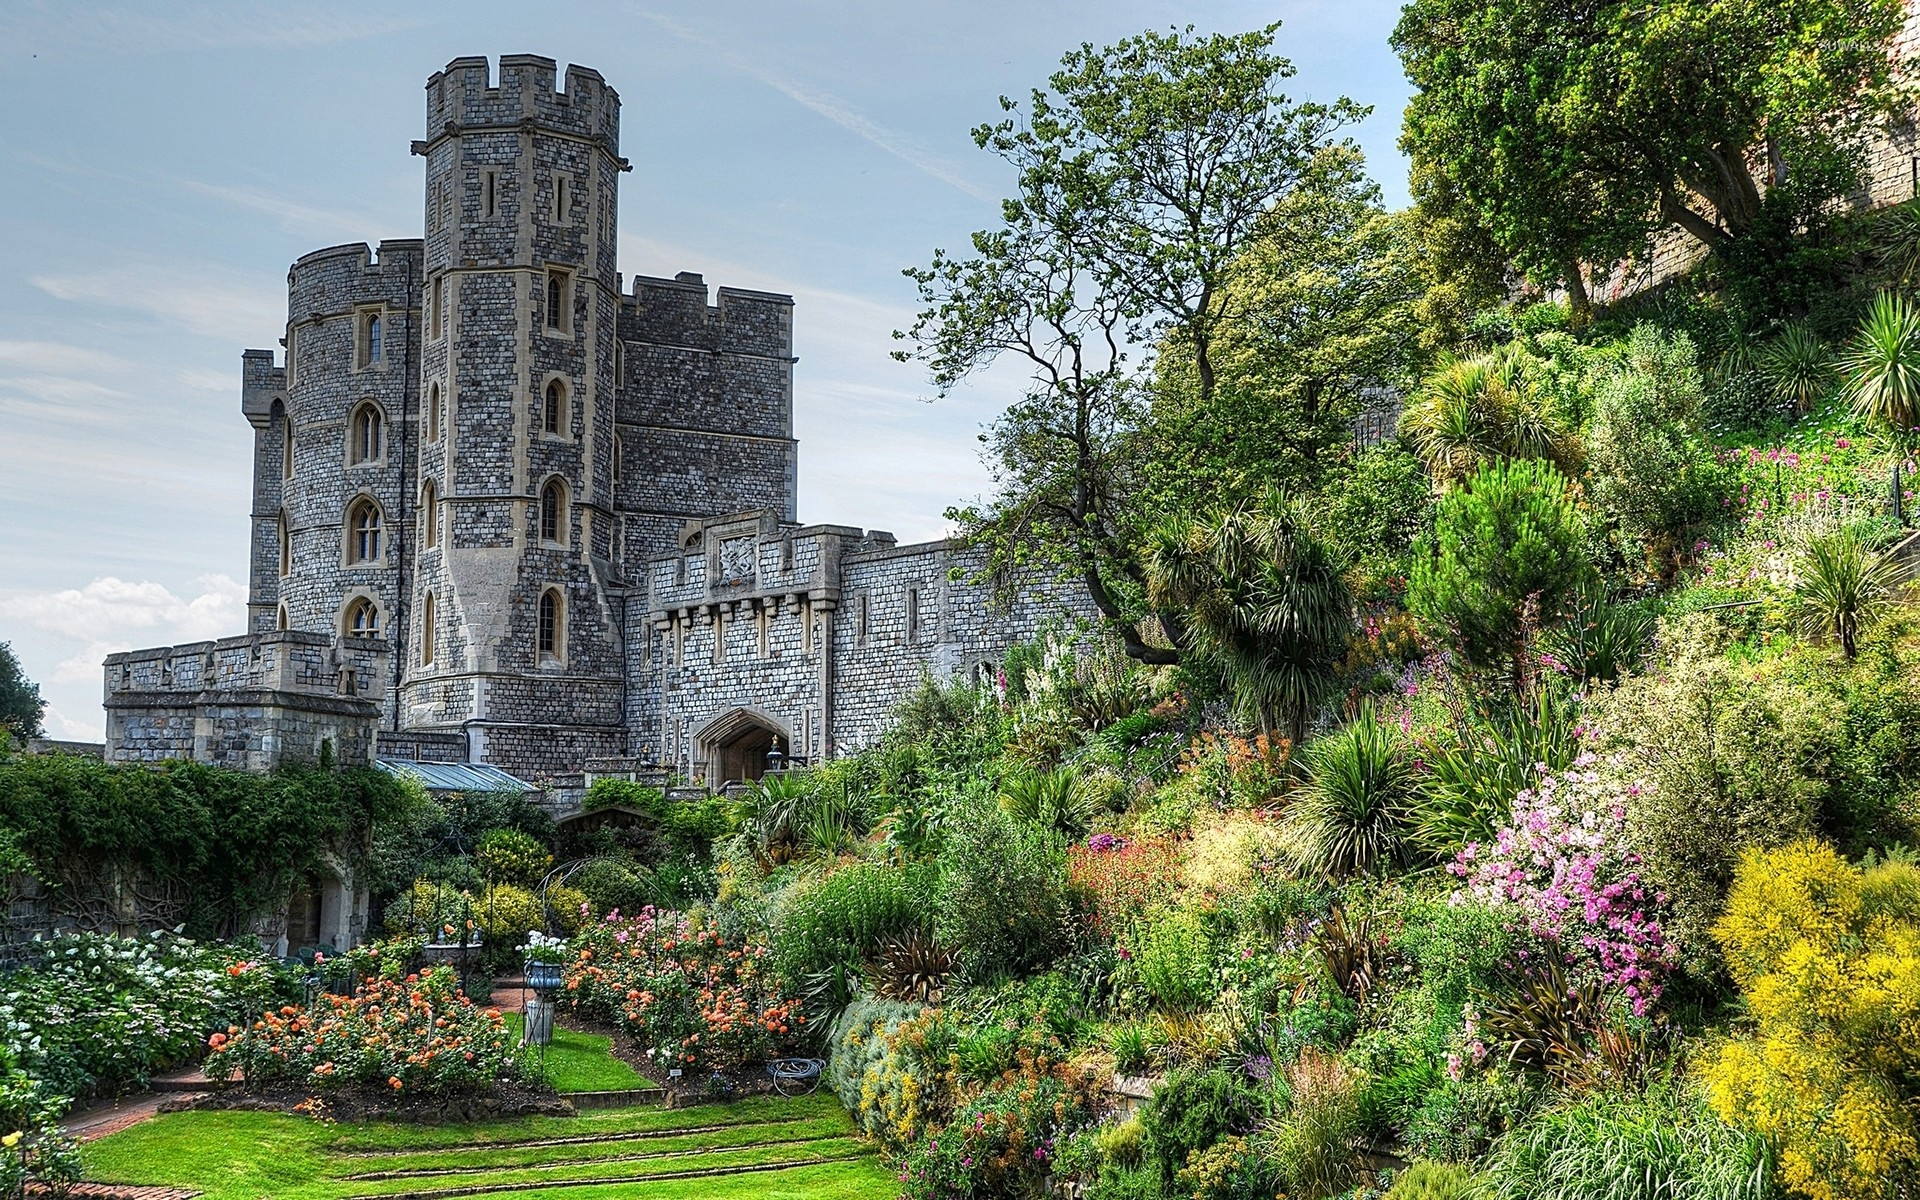 Res: 1920x1200, Stone castle with a beautiful garden wallpaper